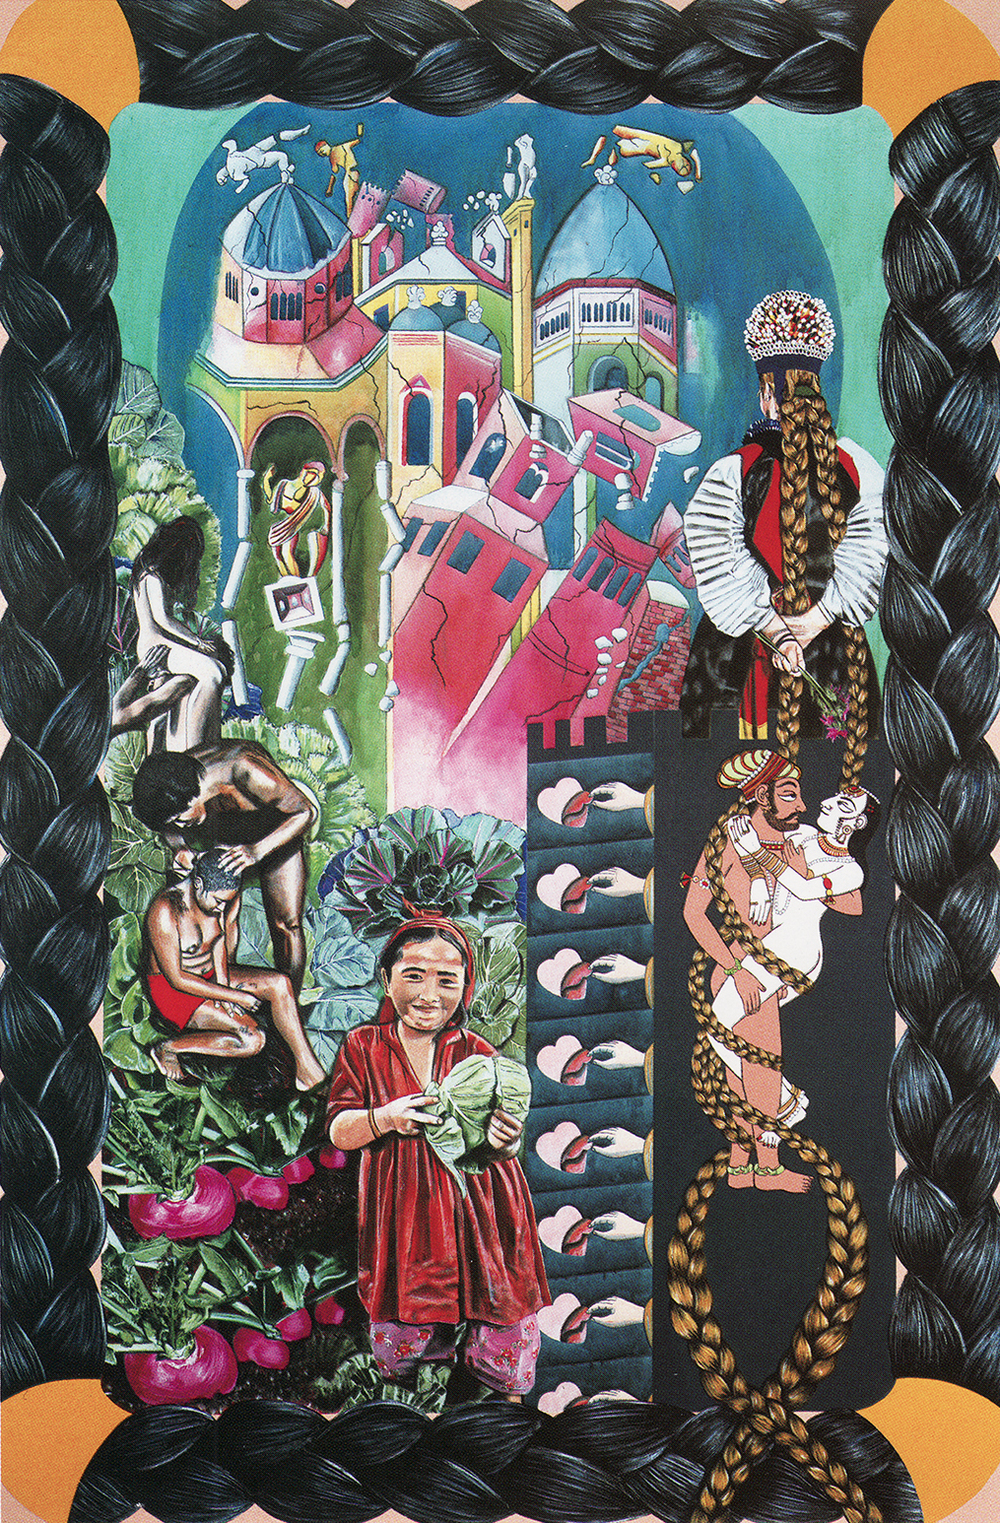 CAROLE CAROOMPAS, Fairy Tales: Rapunzel, 1989 acrylic on canvas 108 x 72 inches